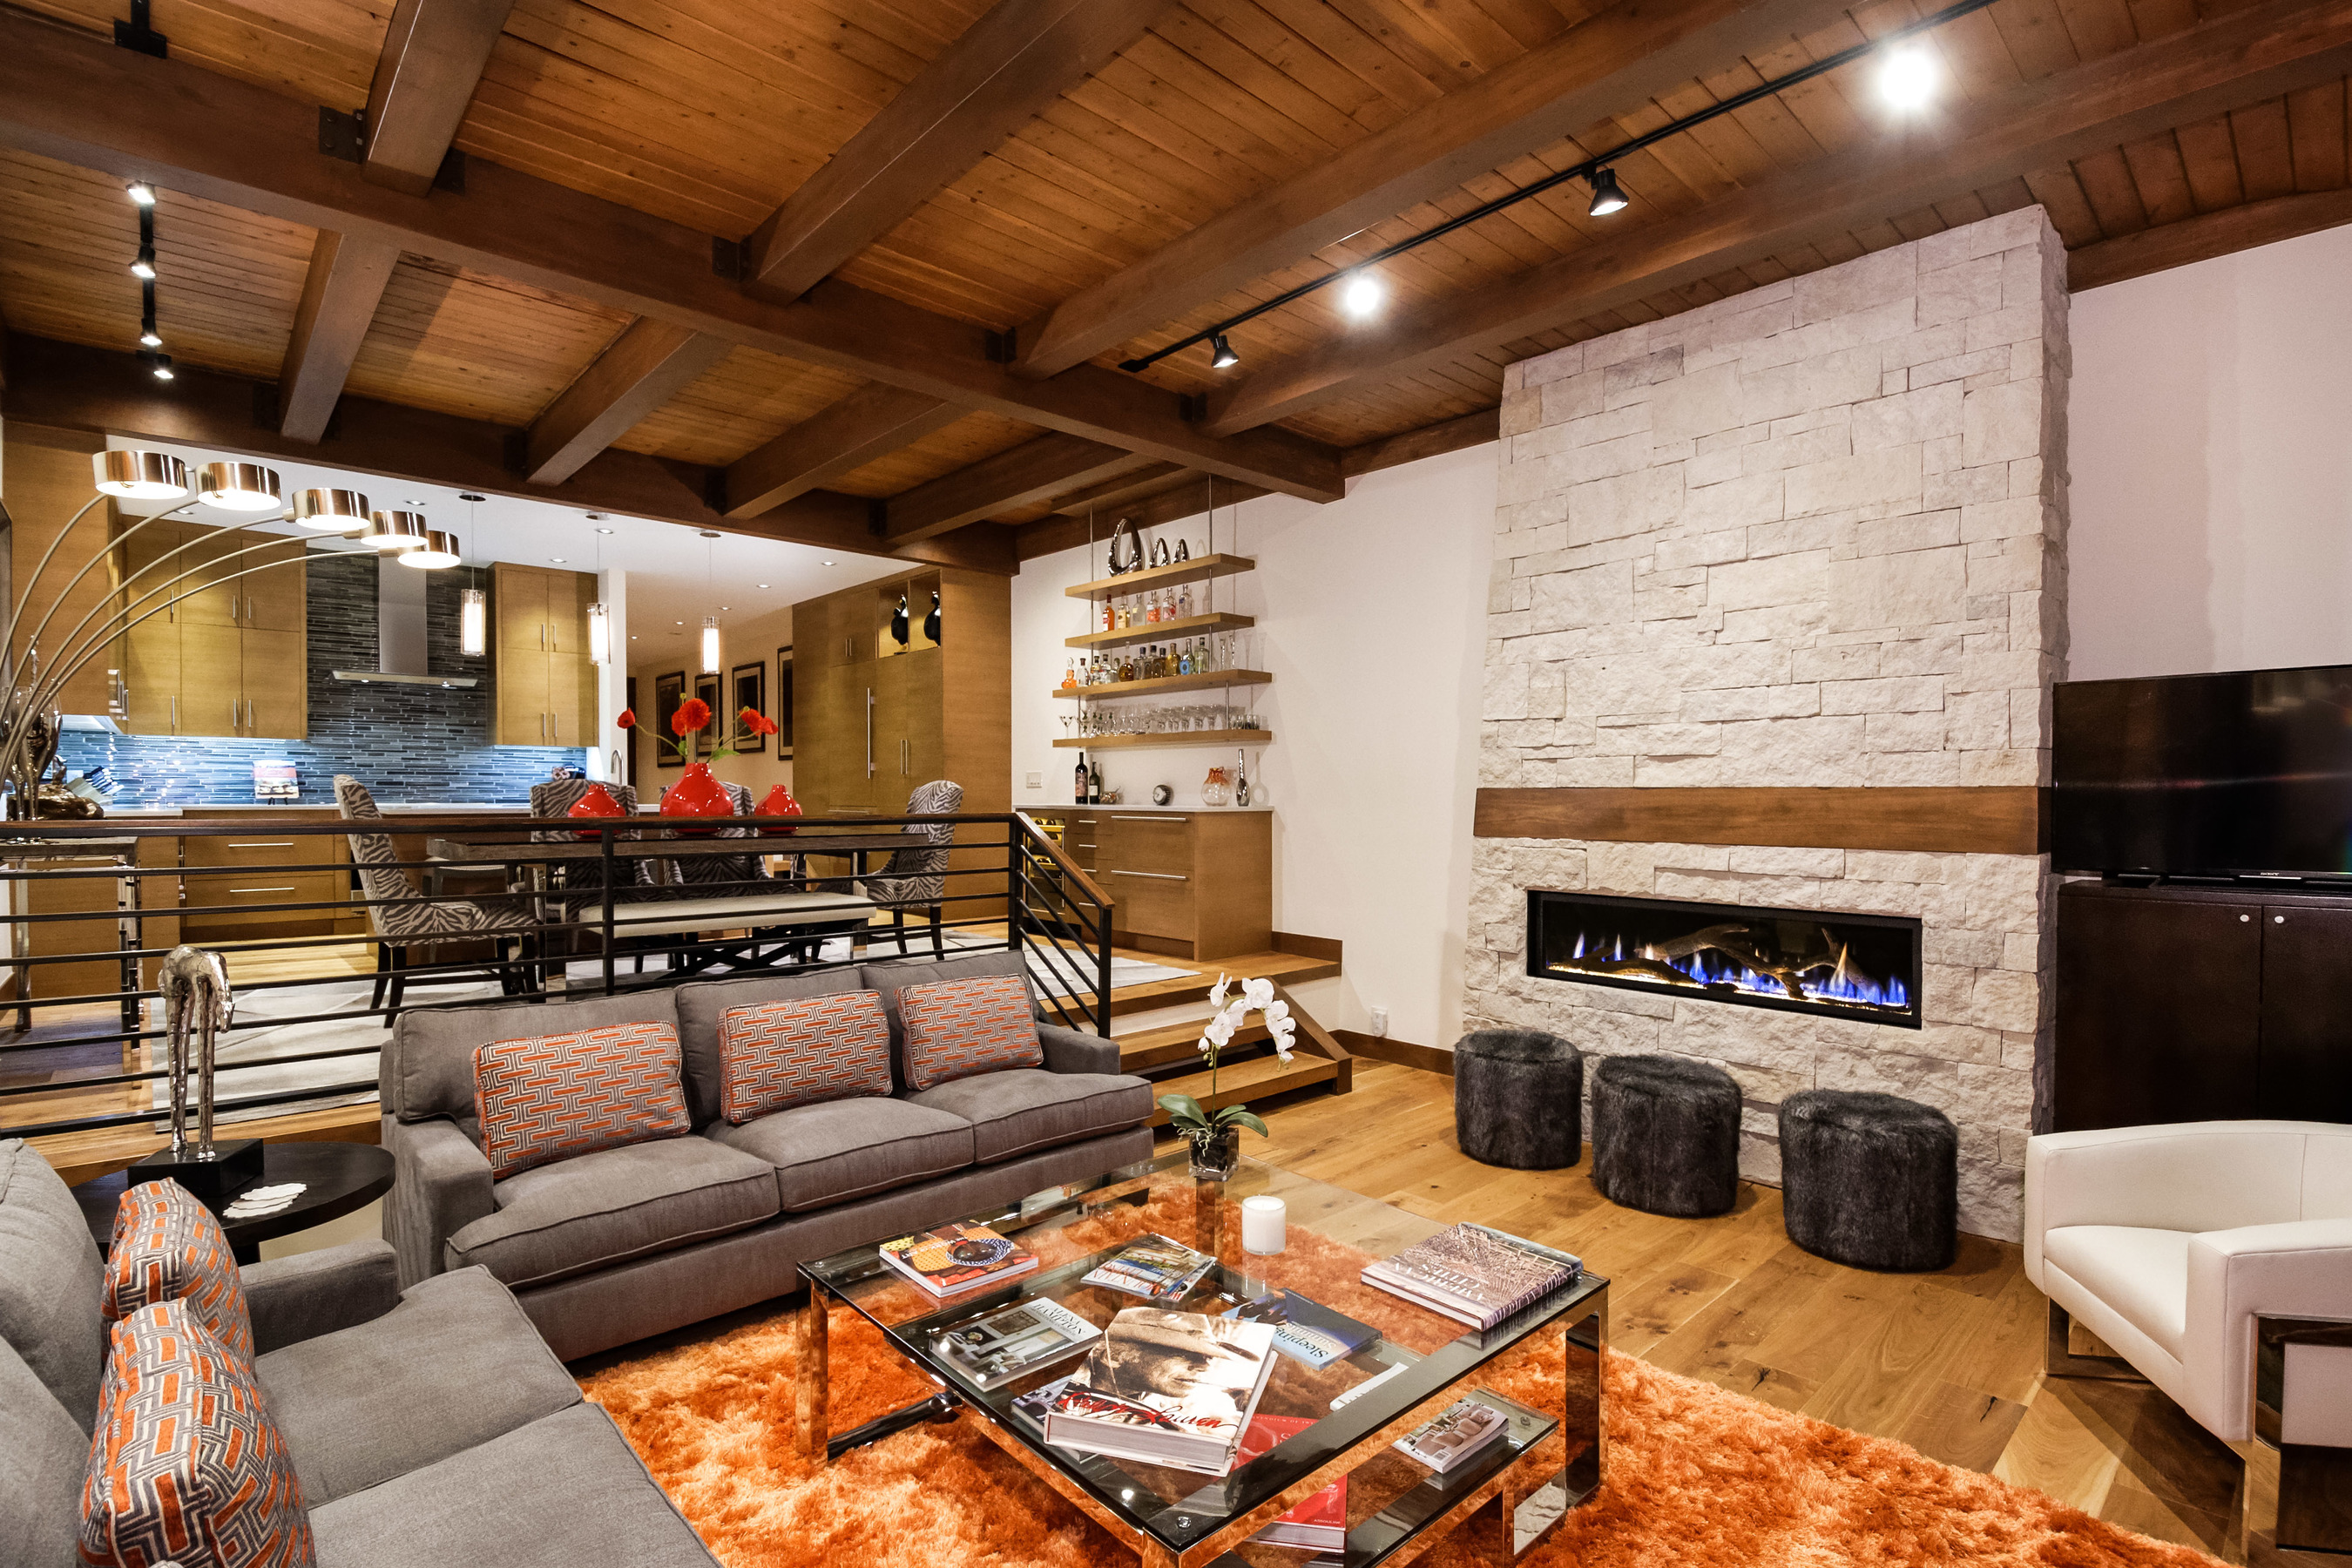 Townhouse for Sale at The Jewel of Snowmass Village 800 Ridge Road, Unit #10 Snowmass Village, Colorado, 81615 United States